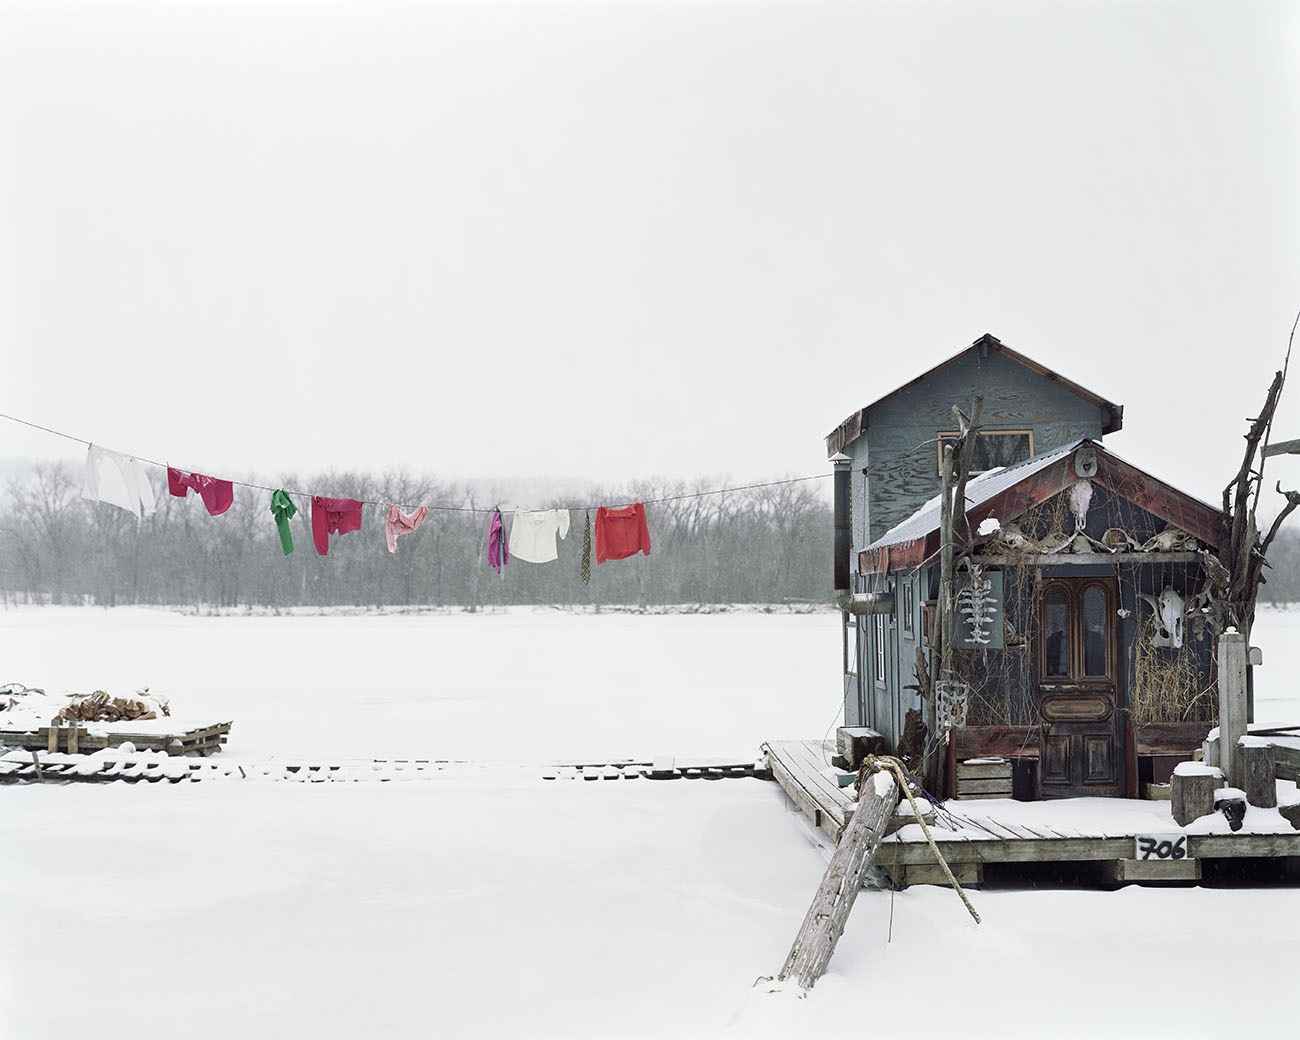 Alec Soth teaches photographic storytelling